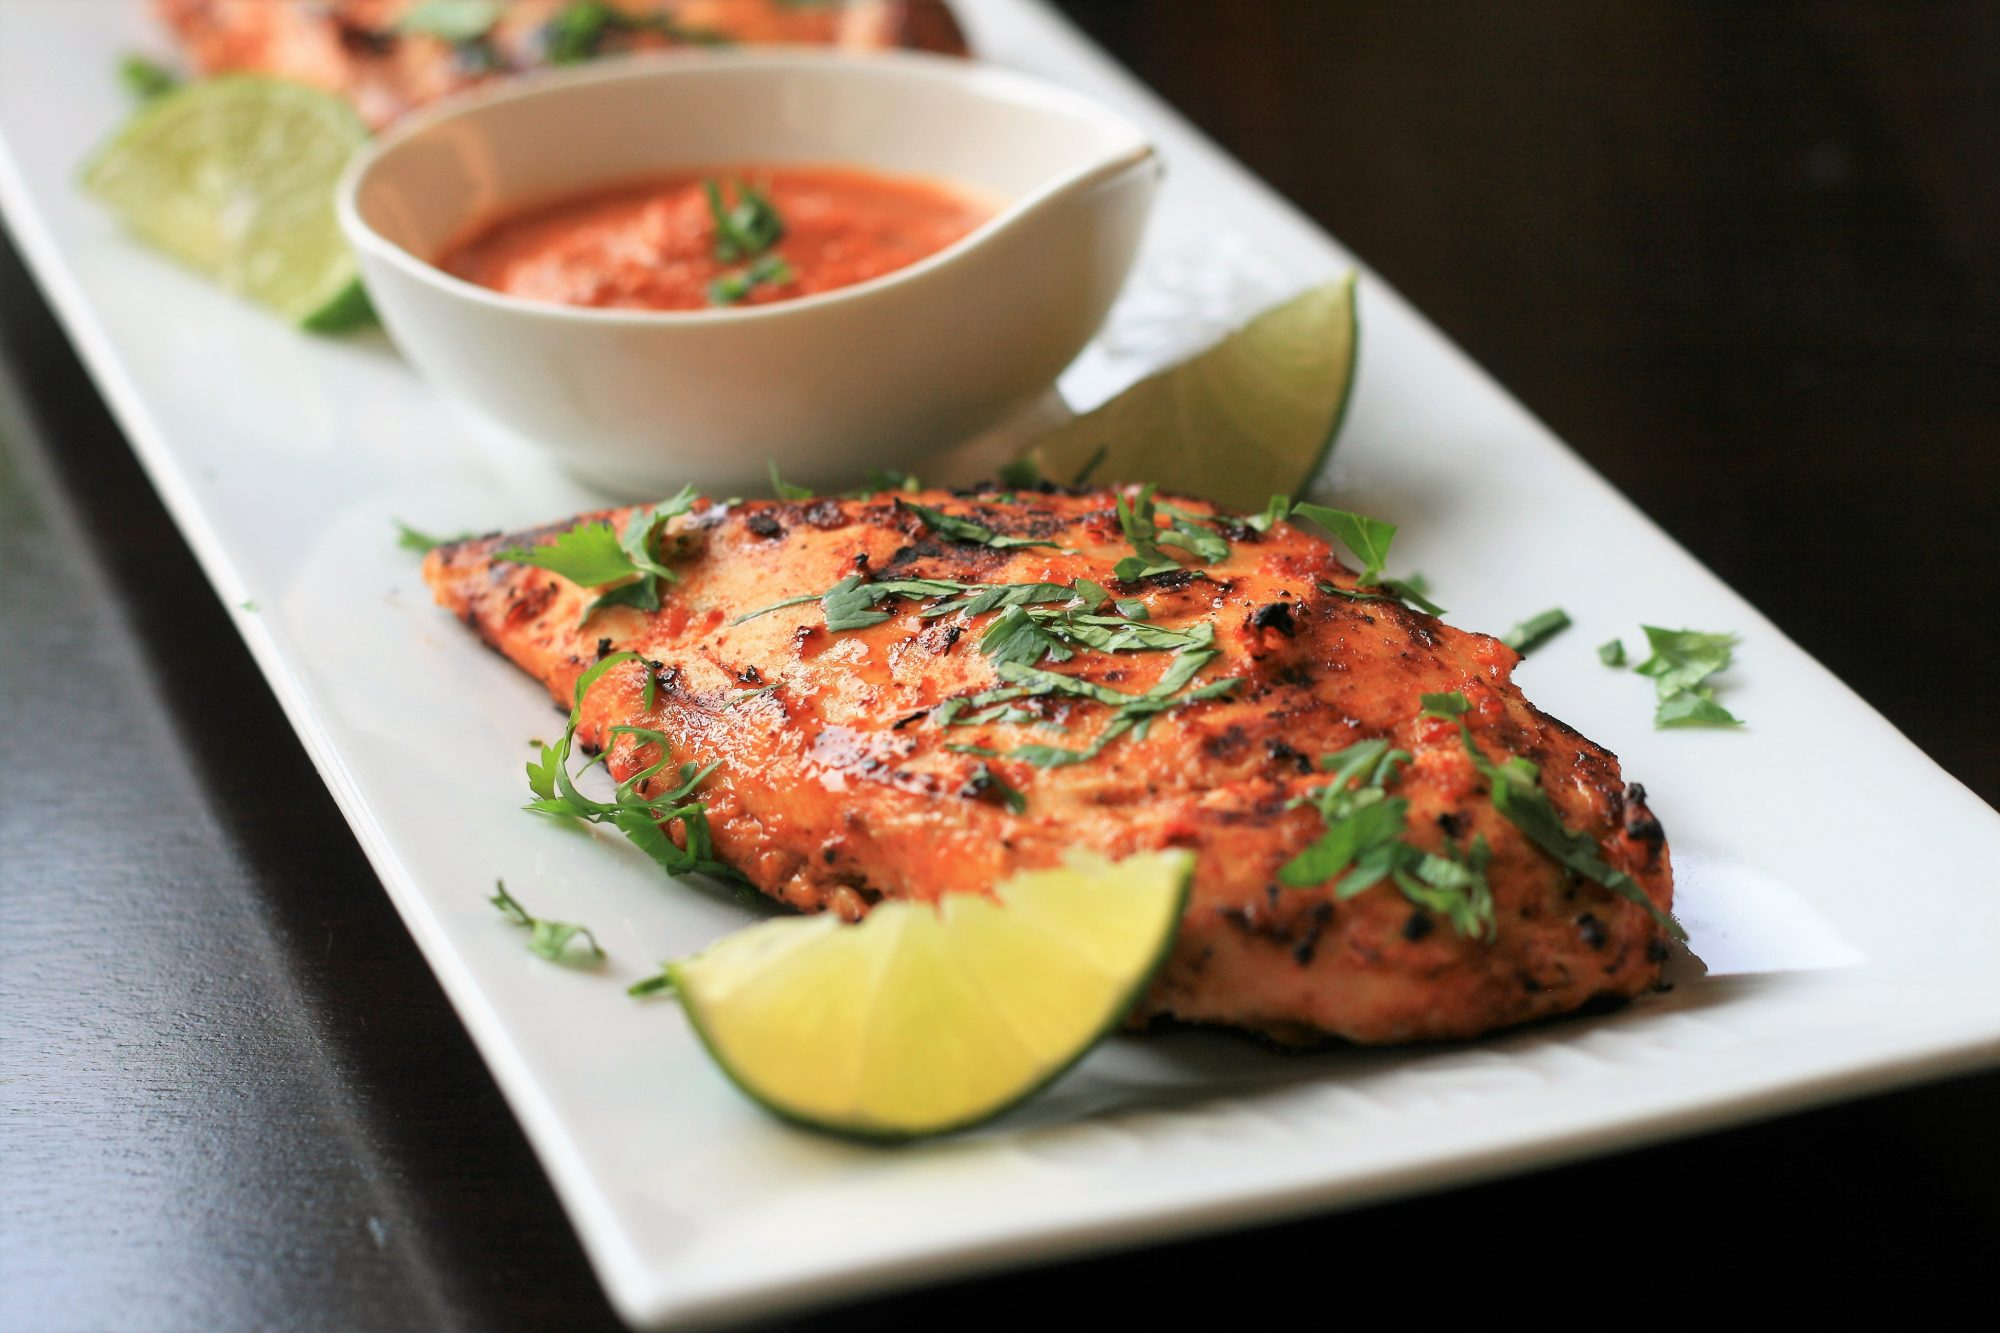 Chipotle Grilled Chicken Breast